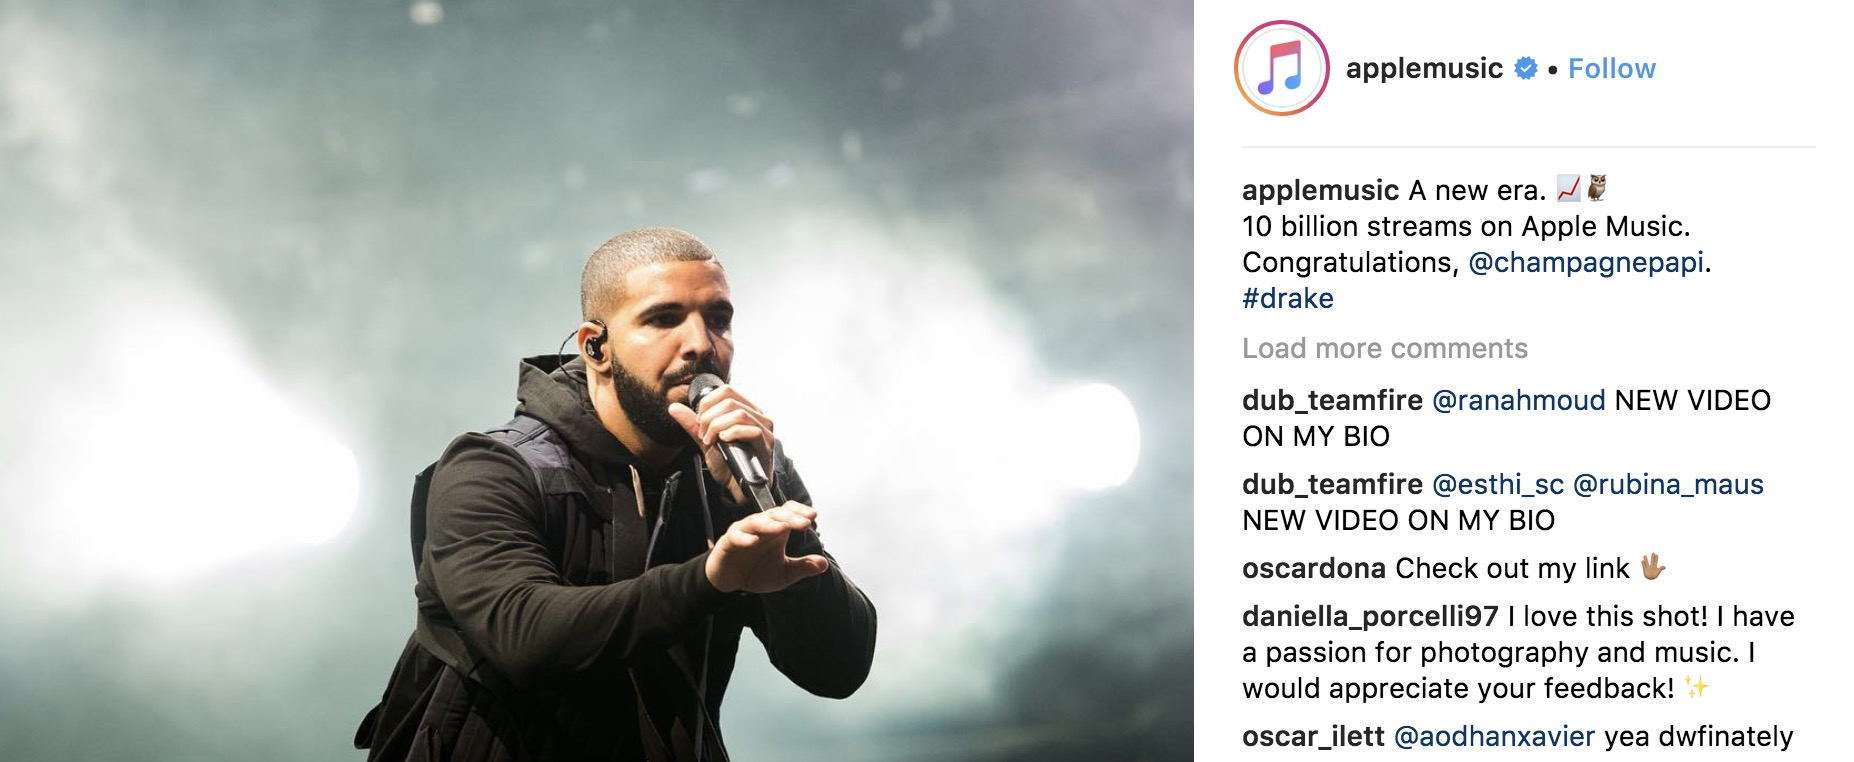 Drake has generated over $100m on Apple Music and Spotify